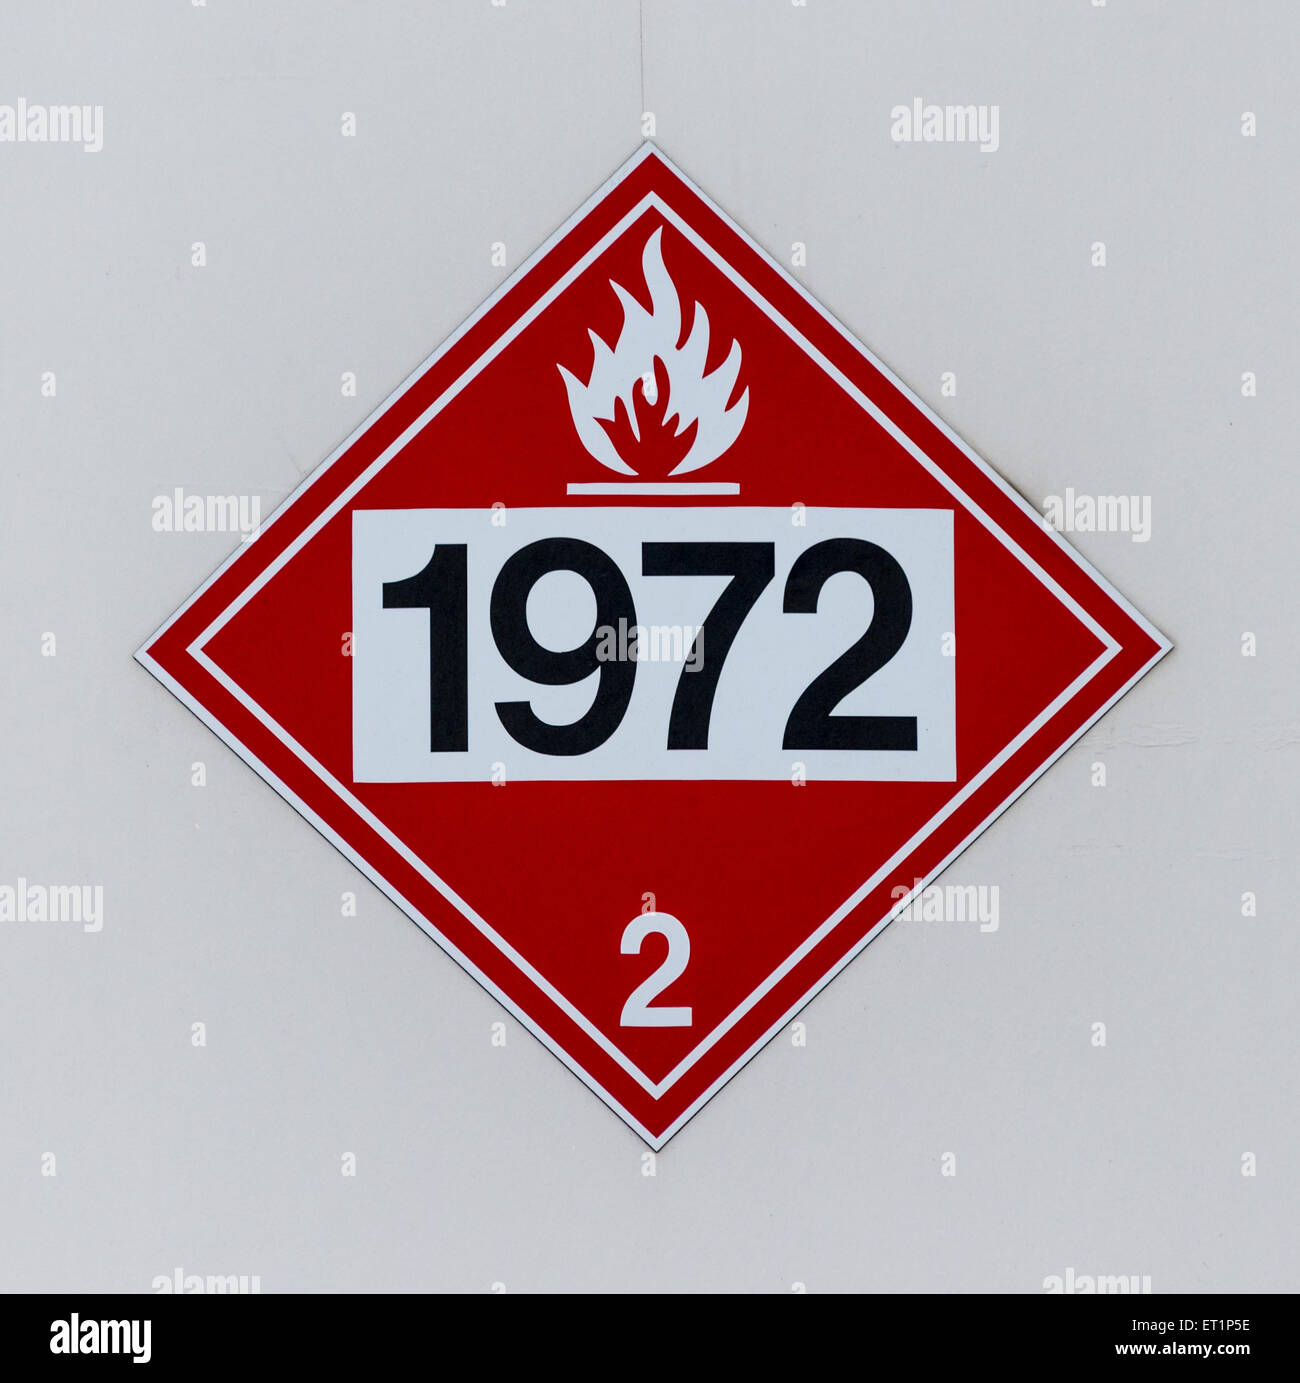 1972 Hazmat Placard on a Liquid Methane (Flammable Gas) Storage Container - Stock Image